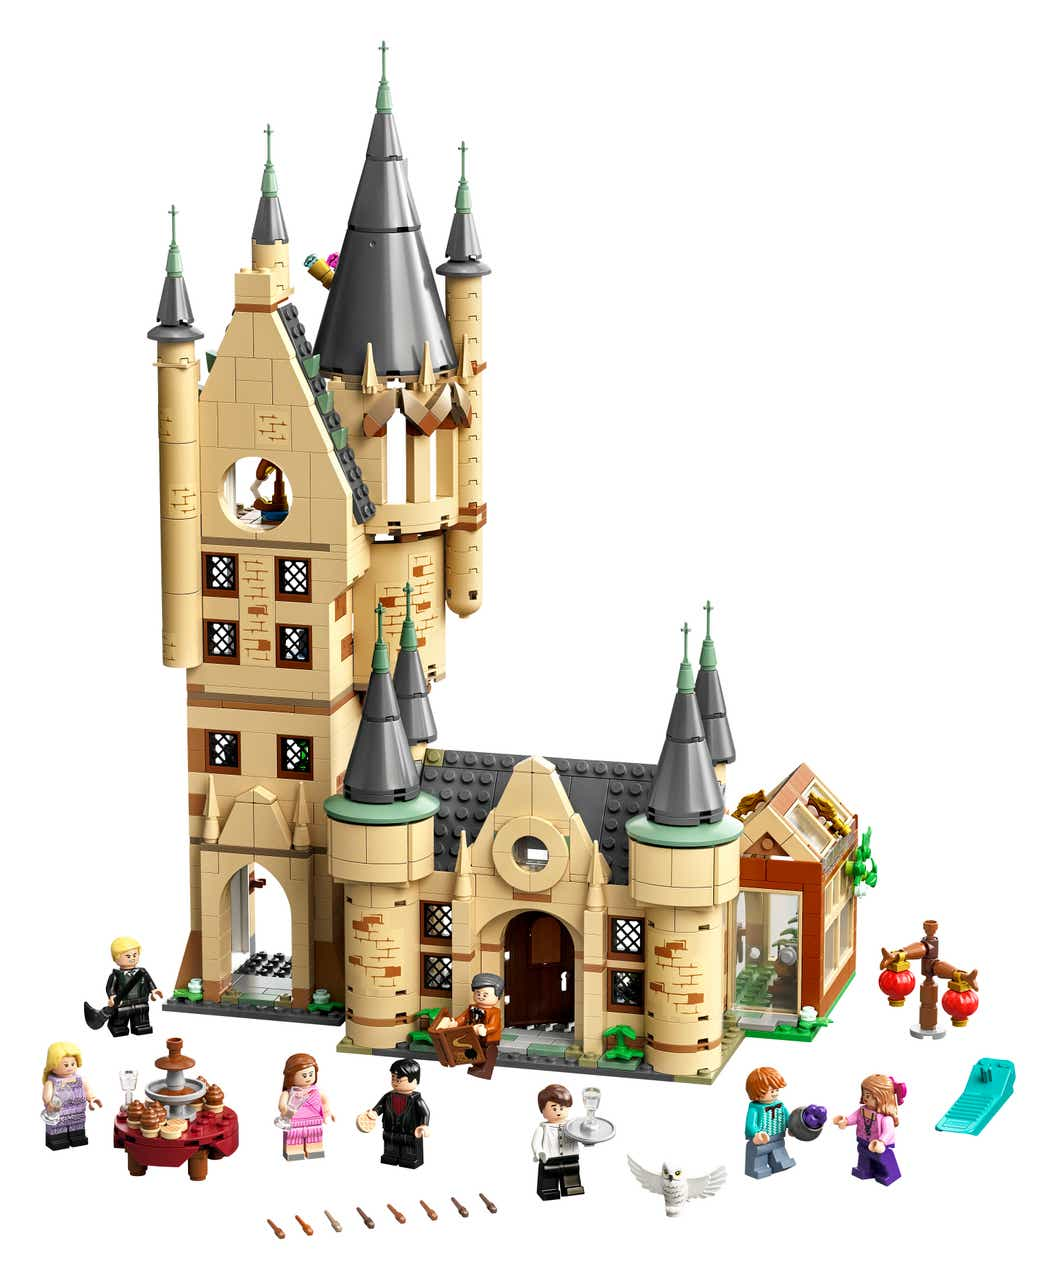 New Lego Harry Potter Wizarding World Sets Unveiled About Us